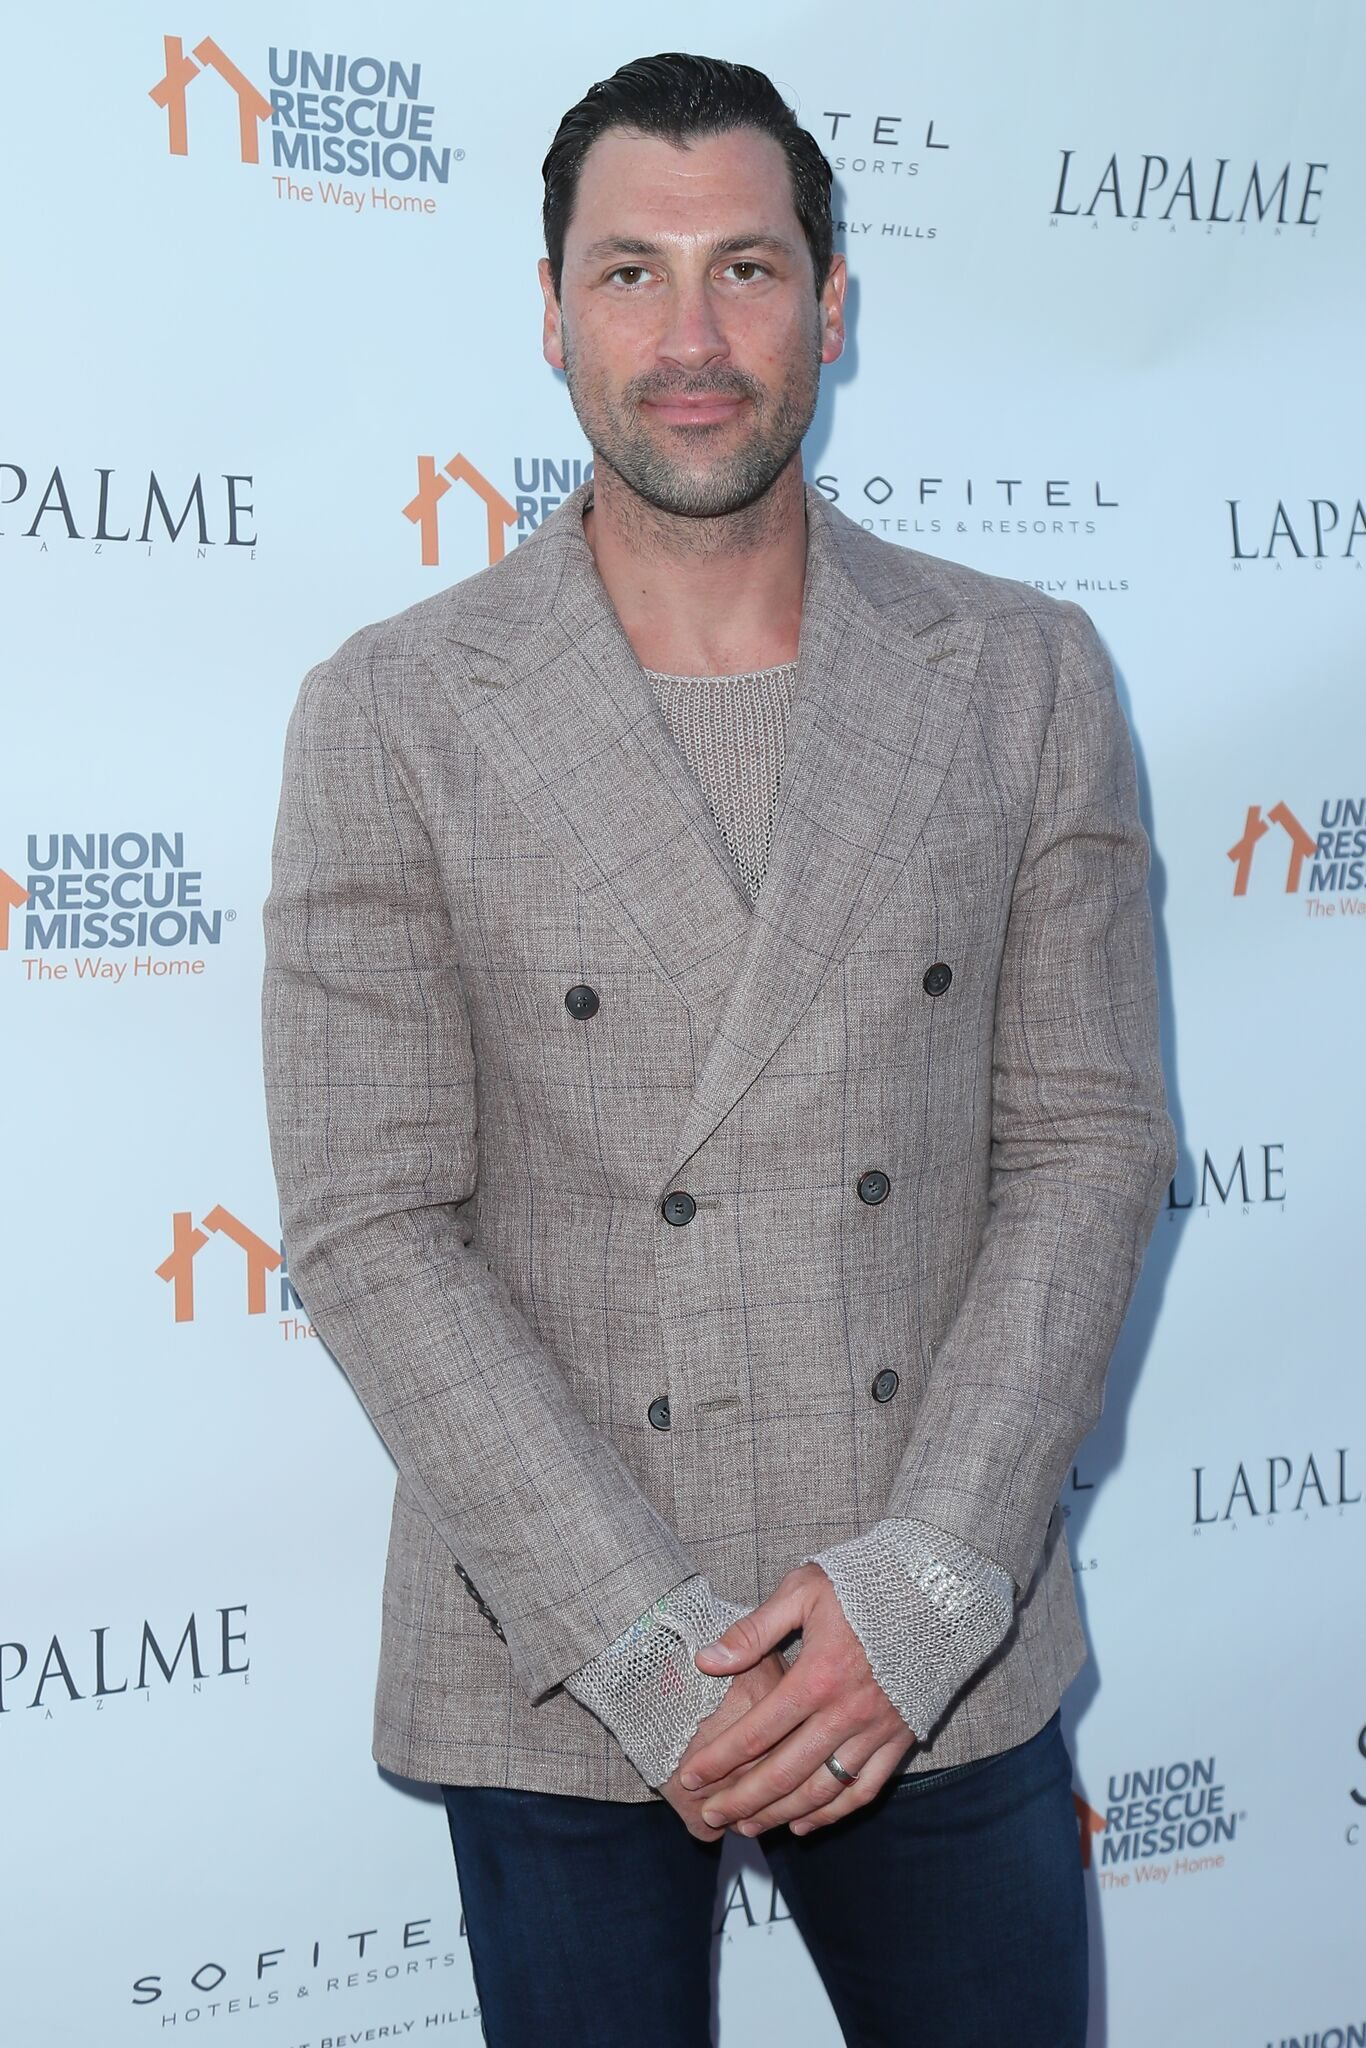 Maks Chmerkovskiy attends Lapalme Magazine's Party For Cover Stars Anthony Anderson And Meagan Good  | Getty Images